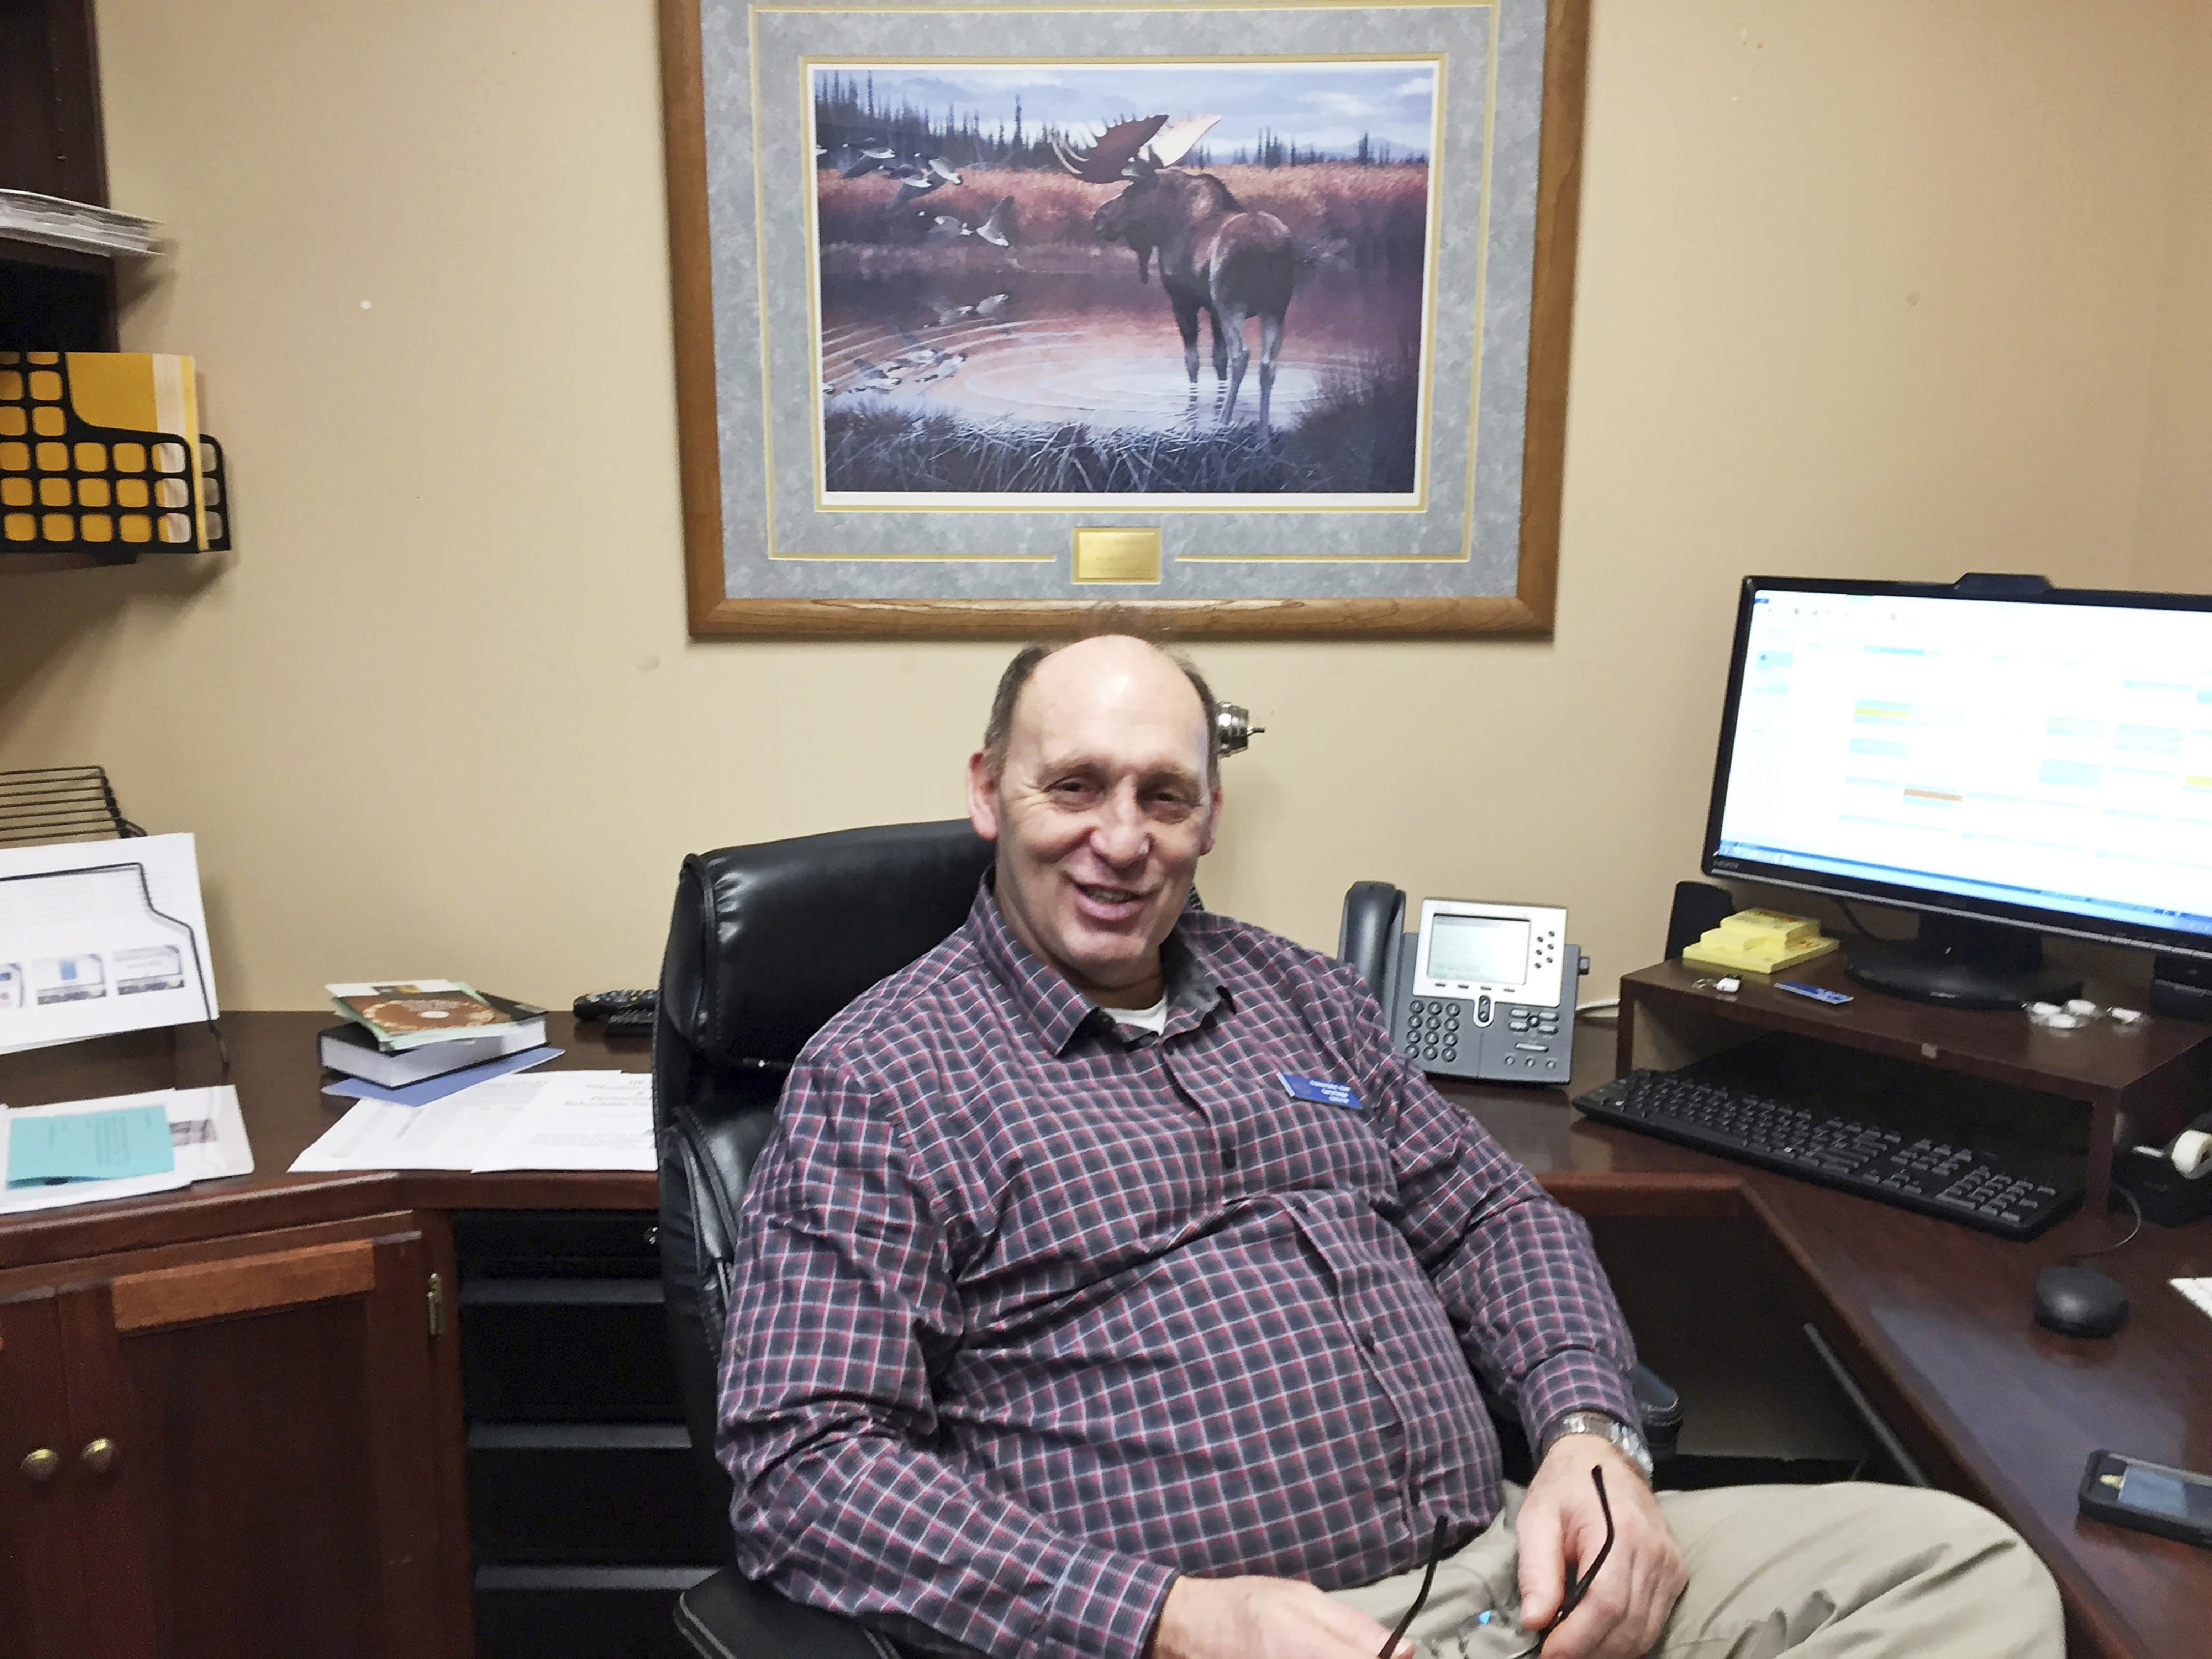 FILE - In this Jan. 16, 2017, file photo, then Rep.-elect Gary Knopp sits in his office at the Alaska Capitol in Juneau, Alaska. The Alaska House Majority says Alaska state Rep. Gary Knopp was killed in the mid-air collision of two planes near Soldotna on Friday, July 31, 2020. Alaska State Troopers would not confirm Knopp's death beyond saying the mid-air collision near the airport in Soldotna was a fatal crash. (AP Photo/Becky Bohrer, File)